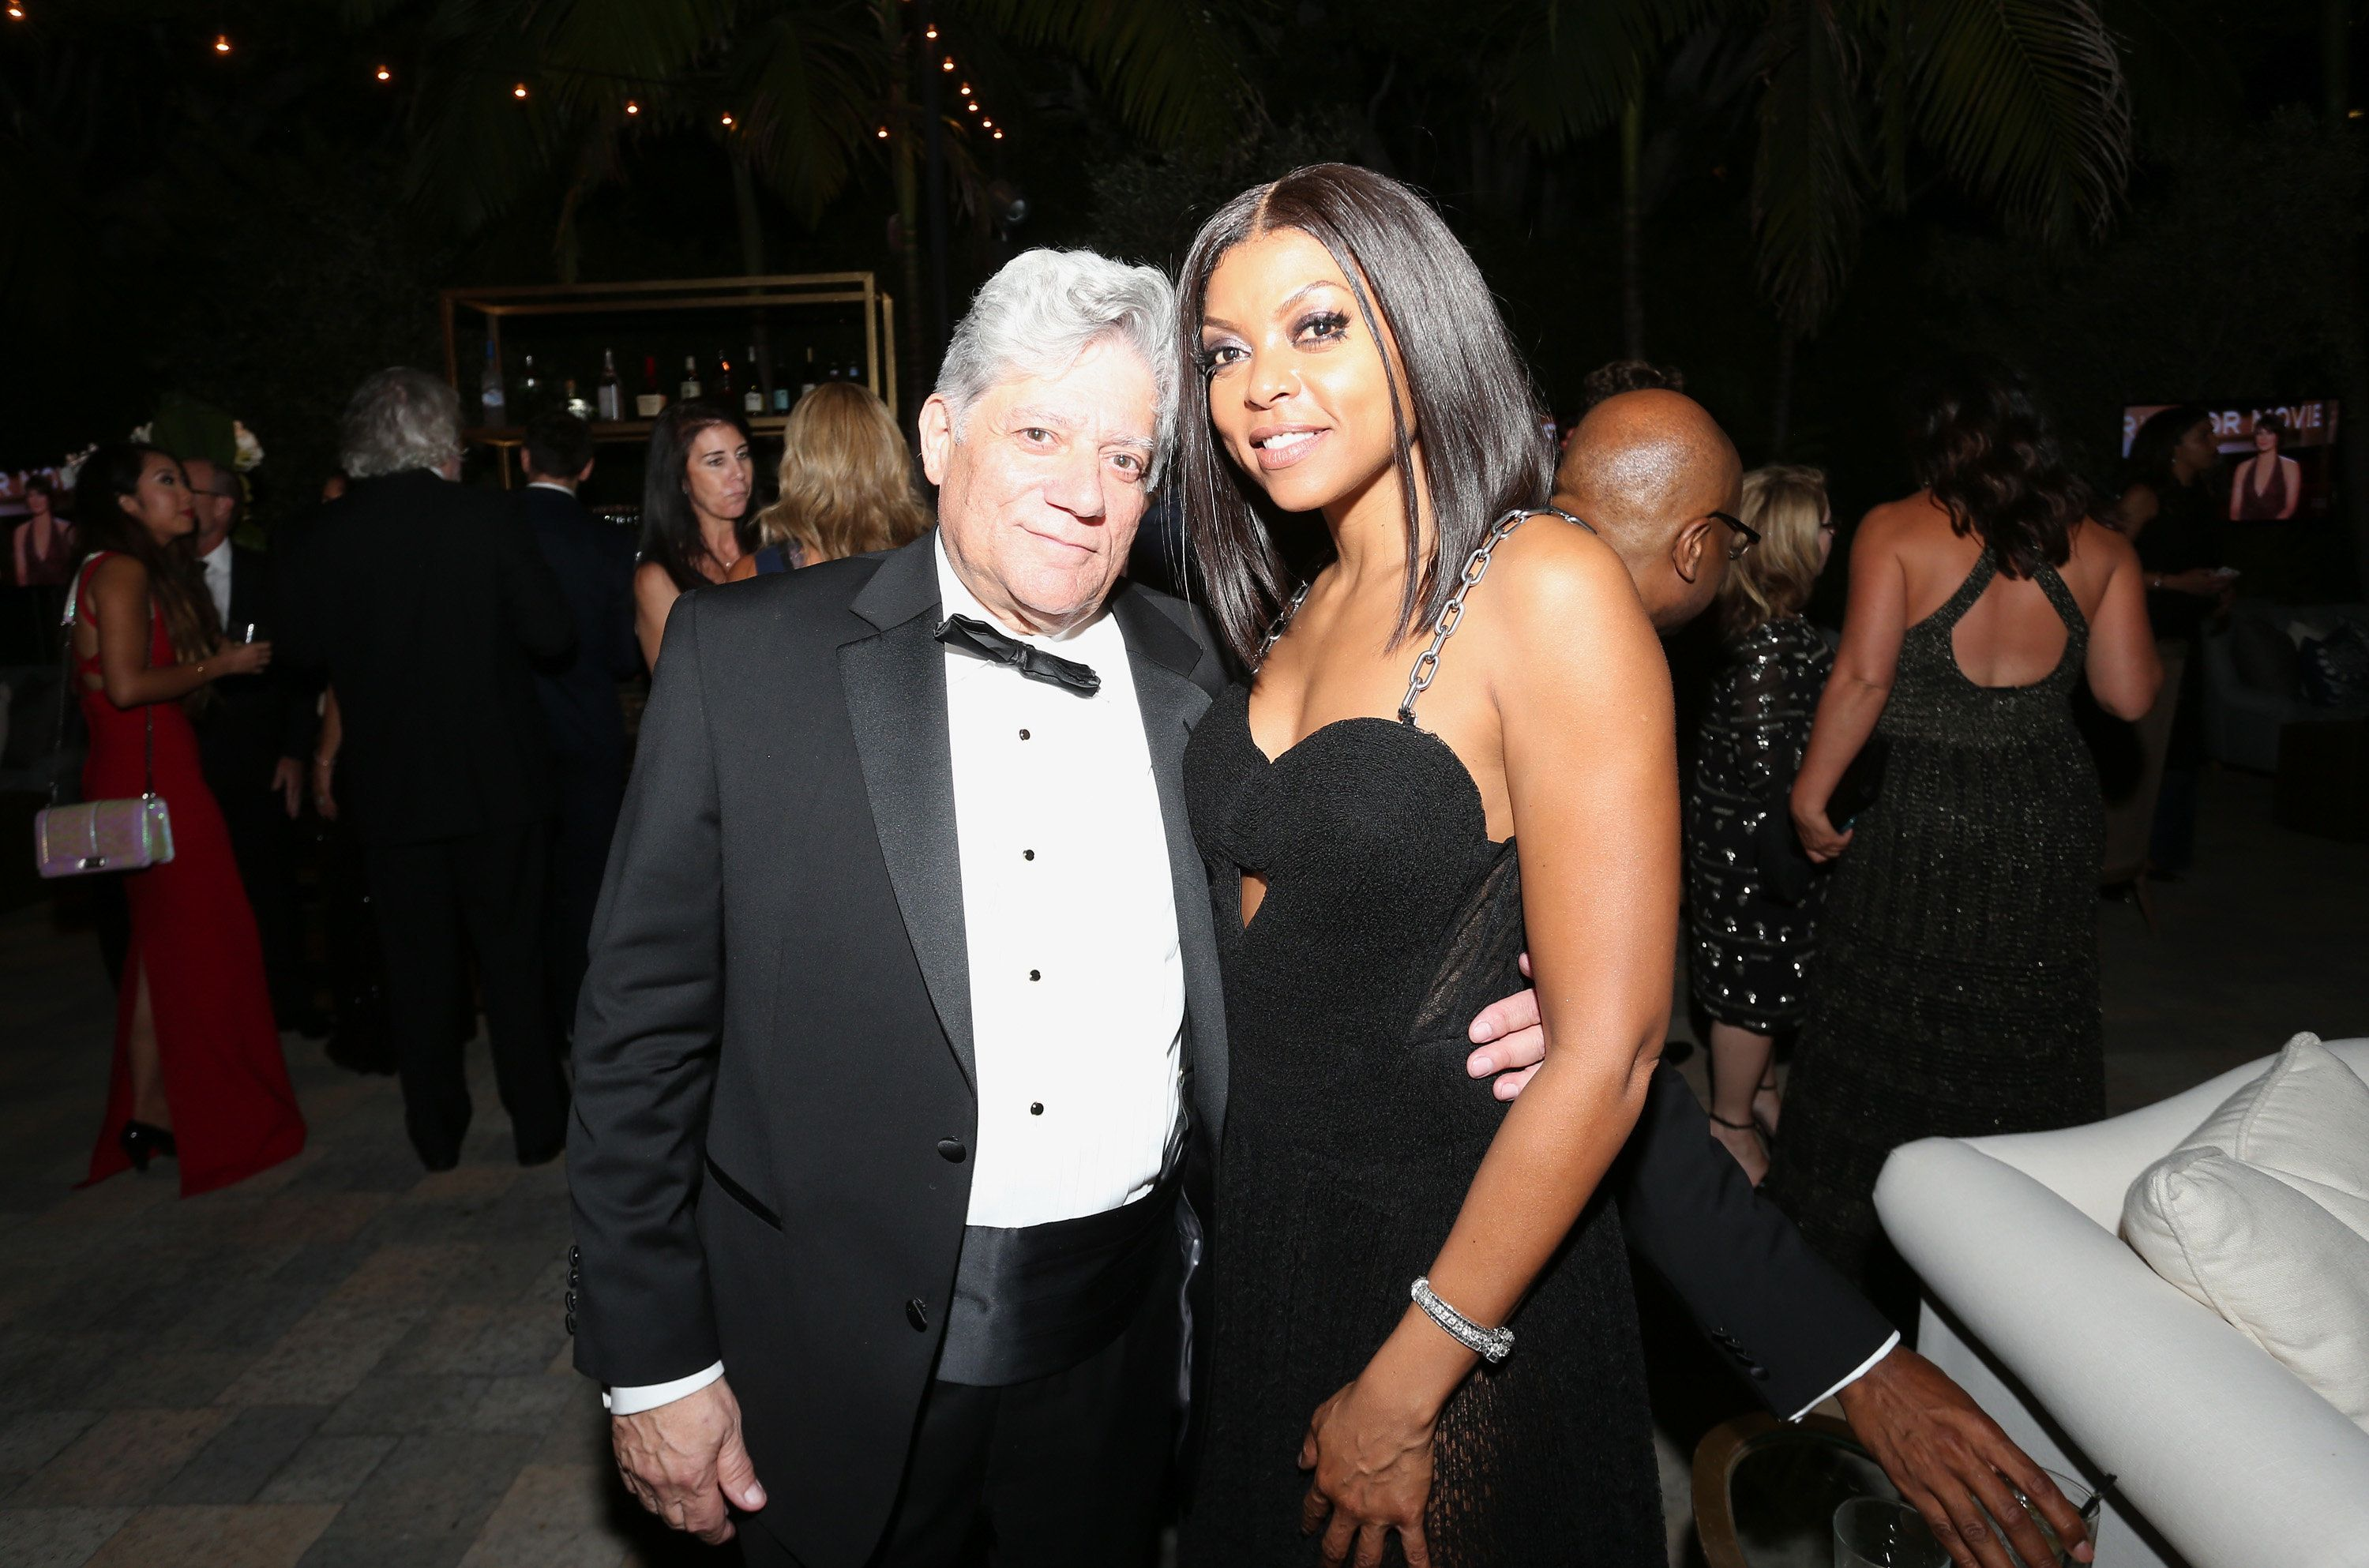 Halle Berry 'Livid' at Former Manager Vincent Cirrincione After Harassment Allegations